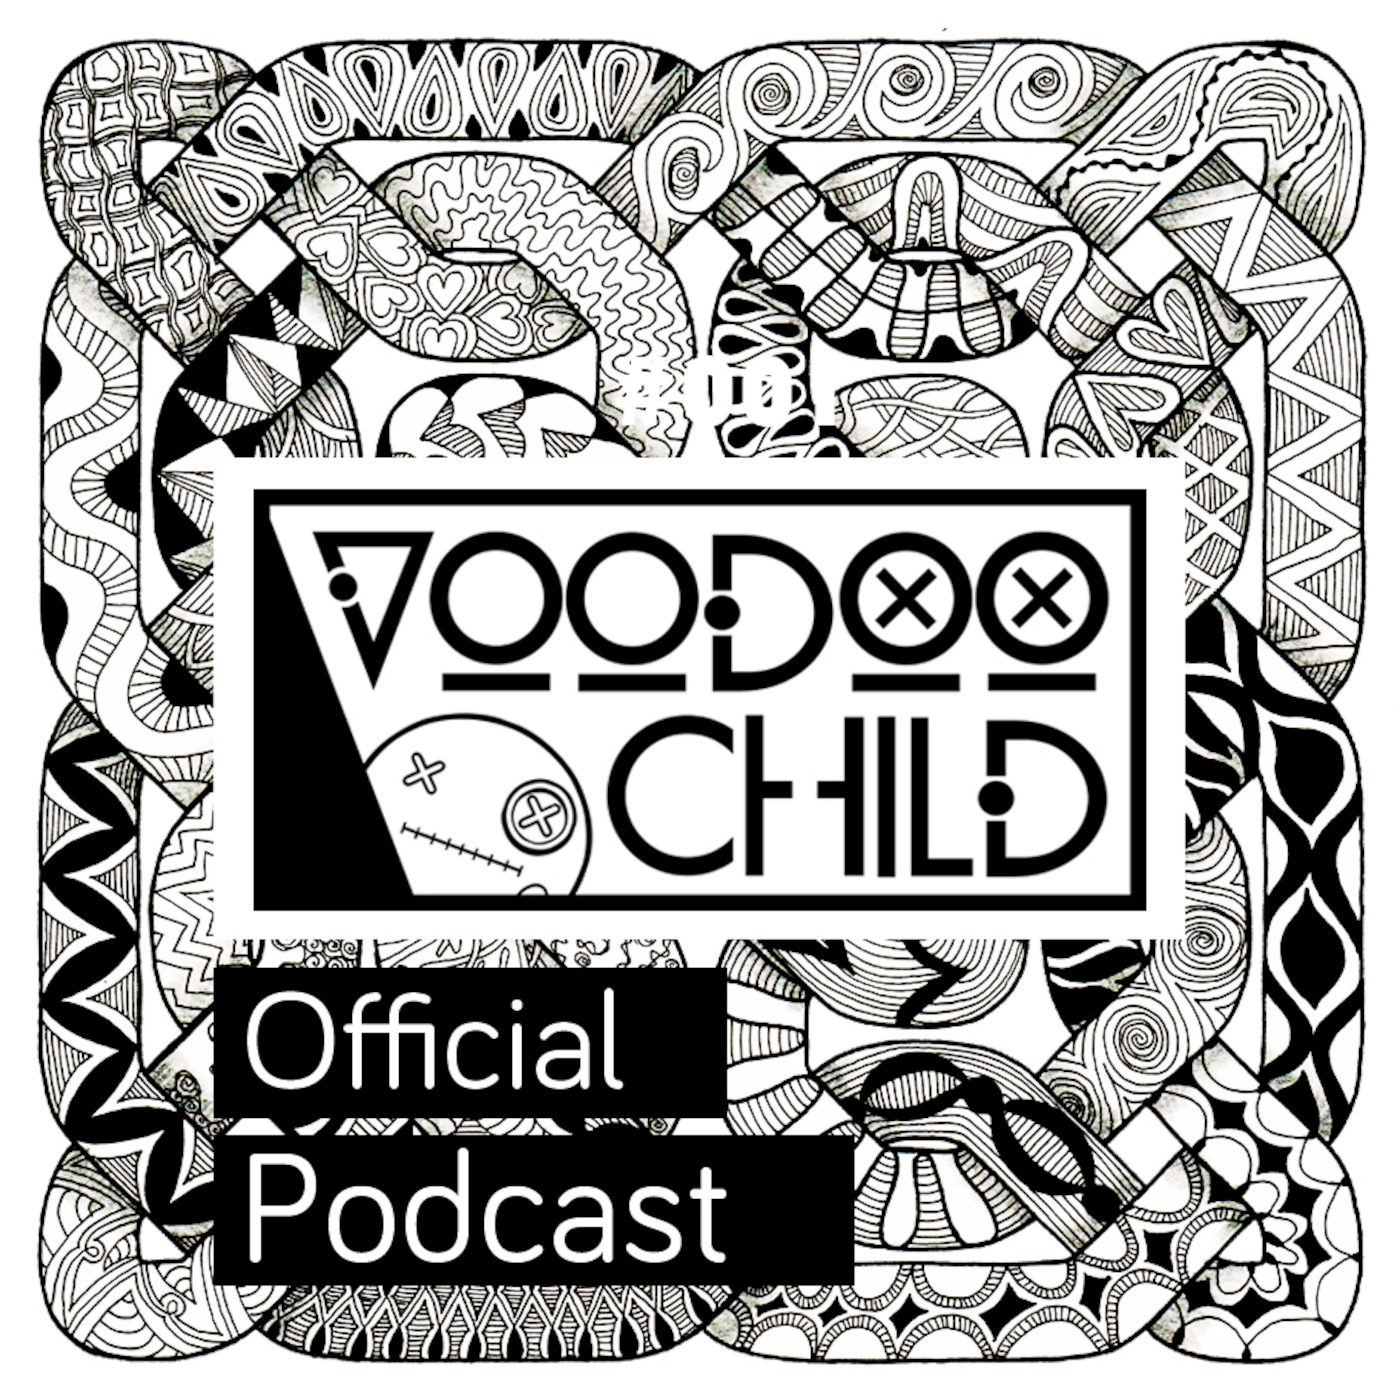 VOODOO CHILD Official Podcast